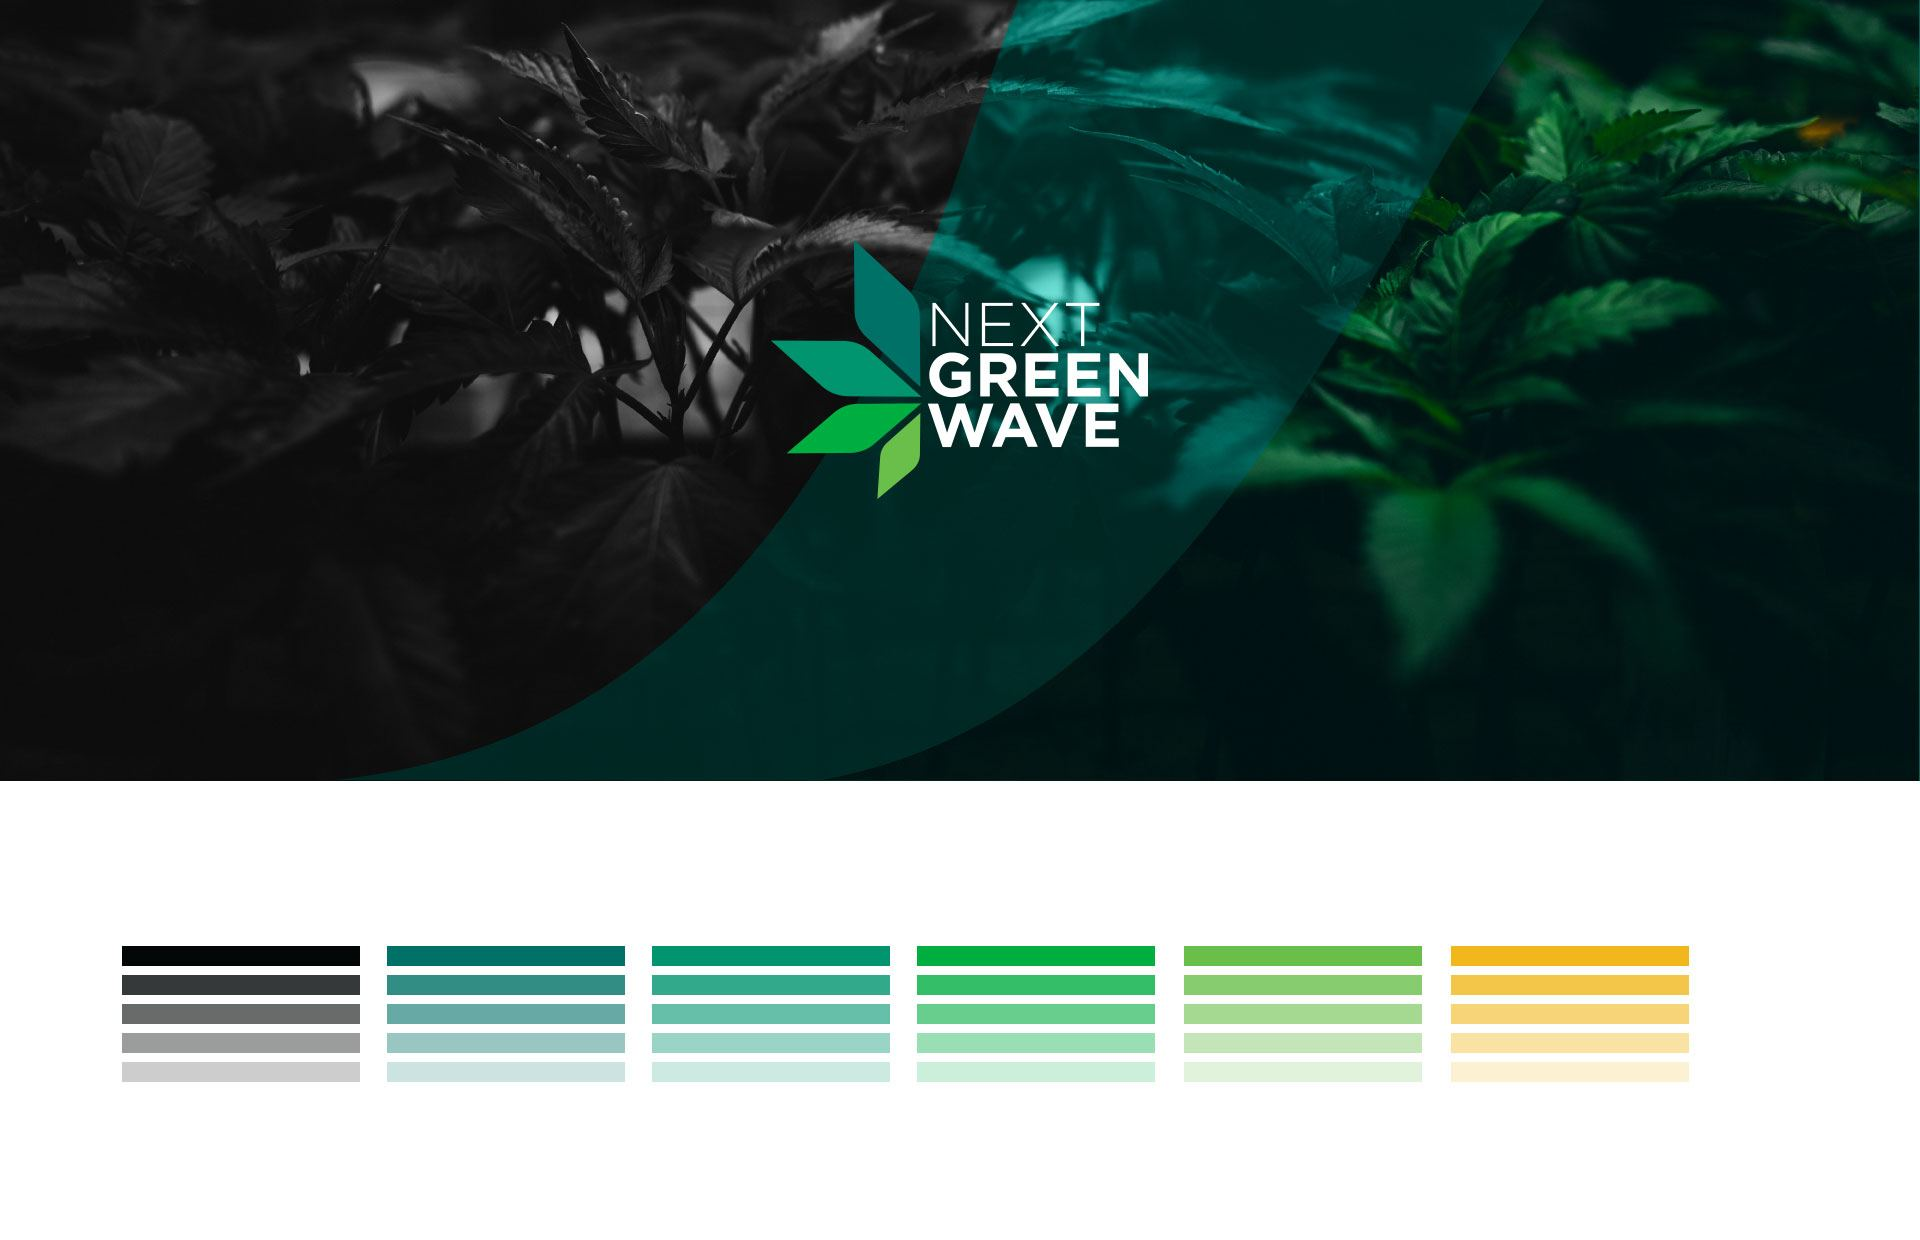 Next_green_wave_CaseStudy2019_01